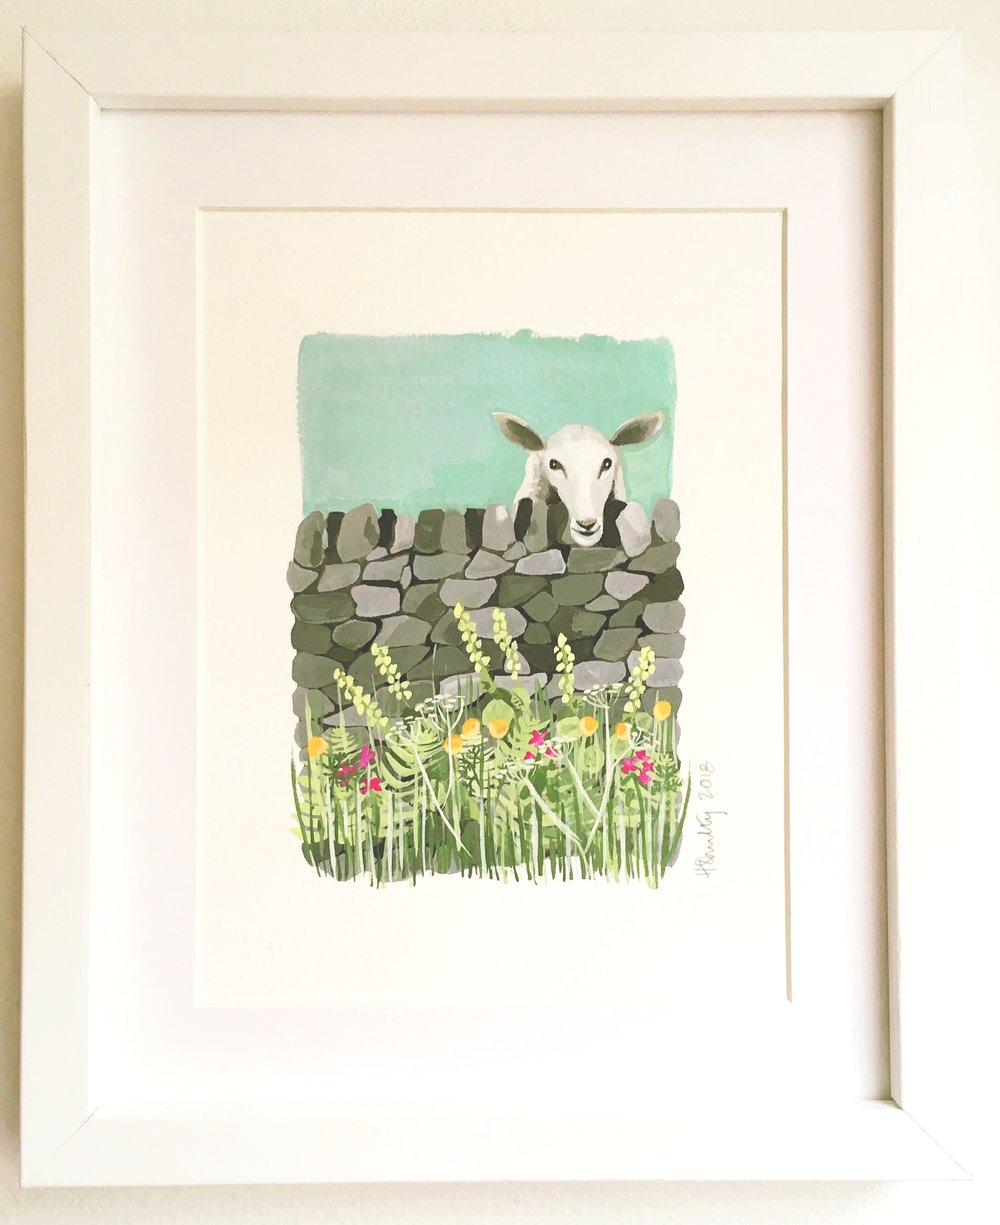 Sheep and a dry stone wall